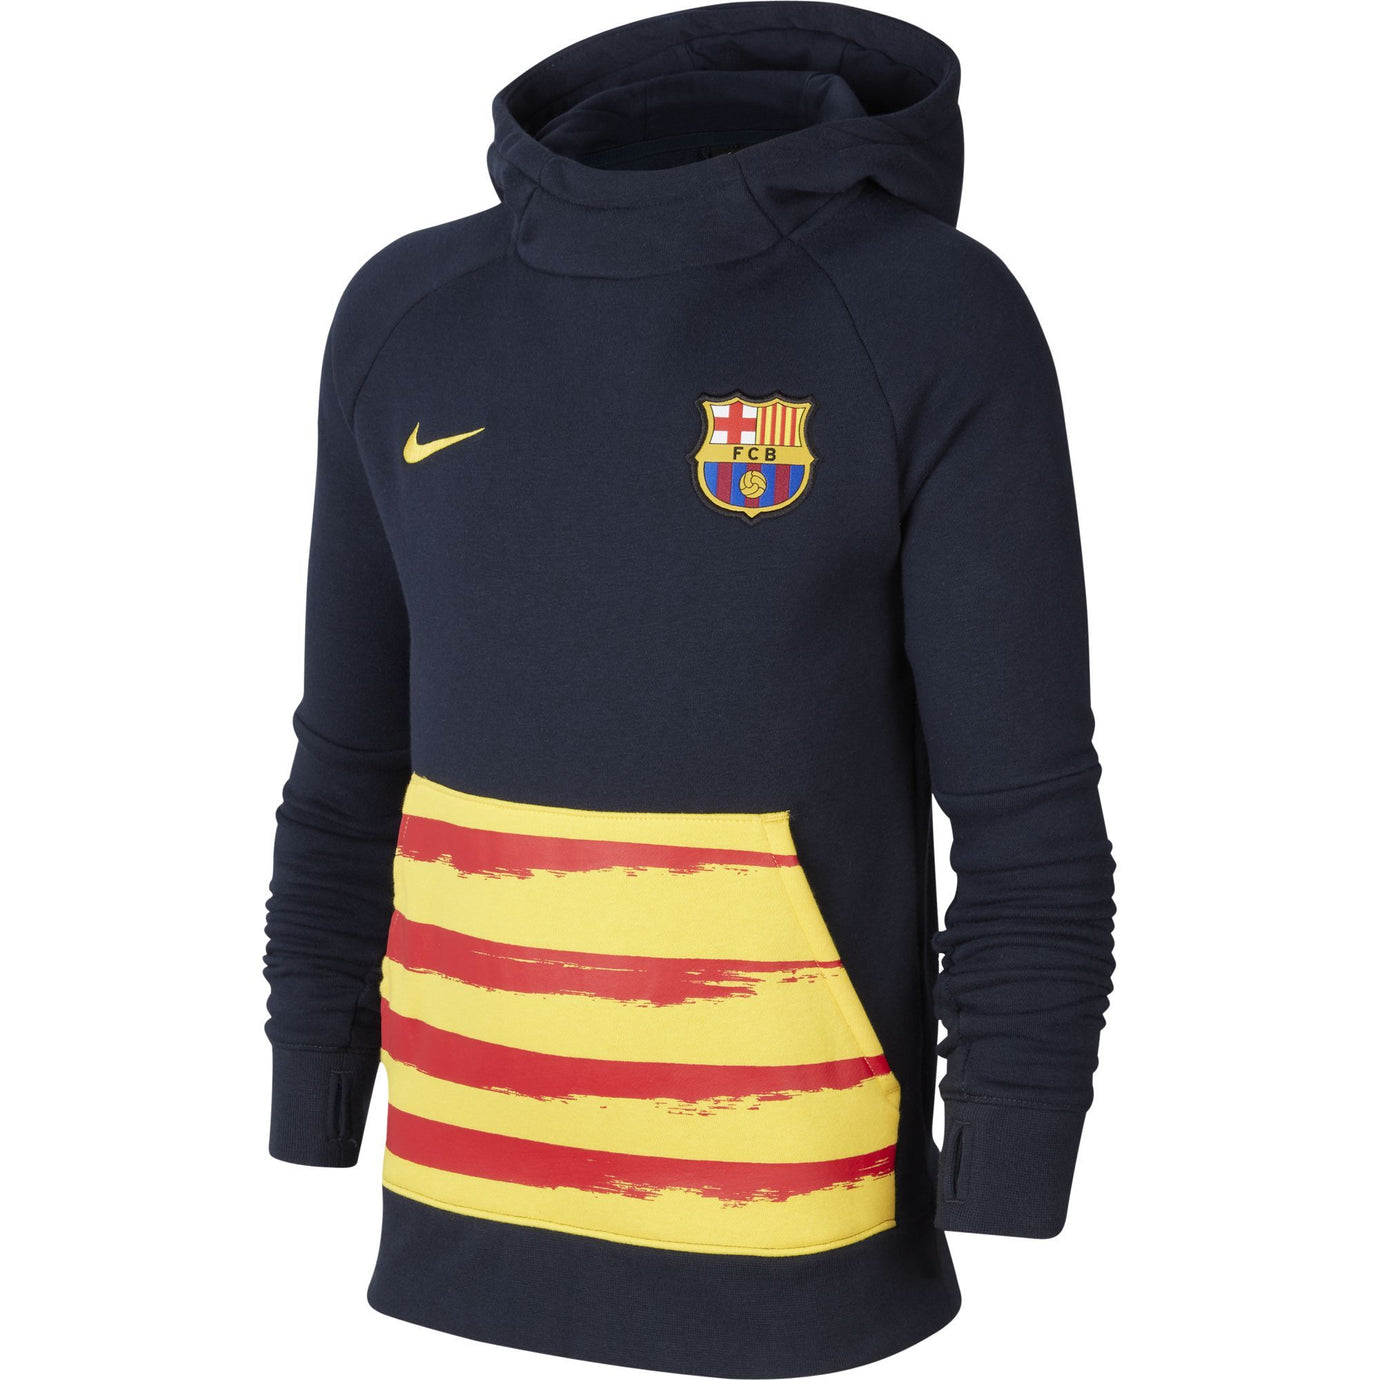 NIKE JR BARCELONA 19-20 FLEECE HOODIE OBISDIAN/VARSITY MAIZE